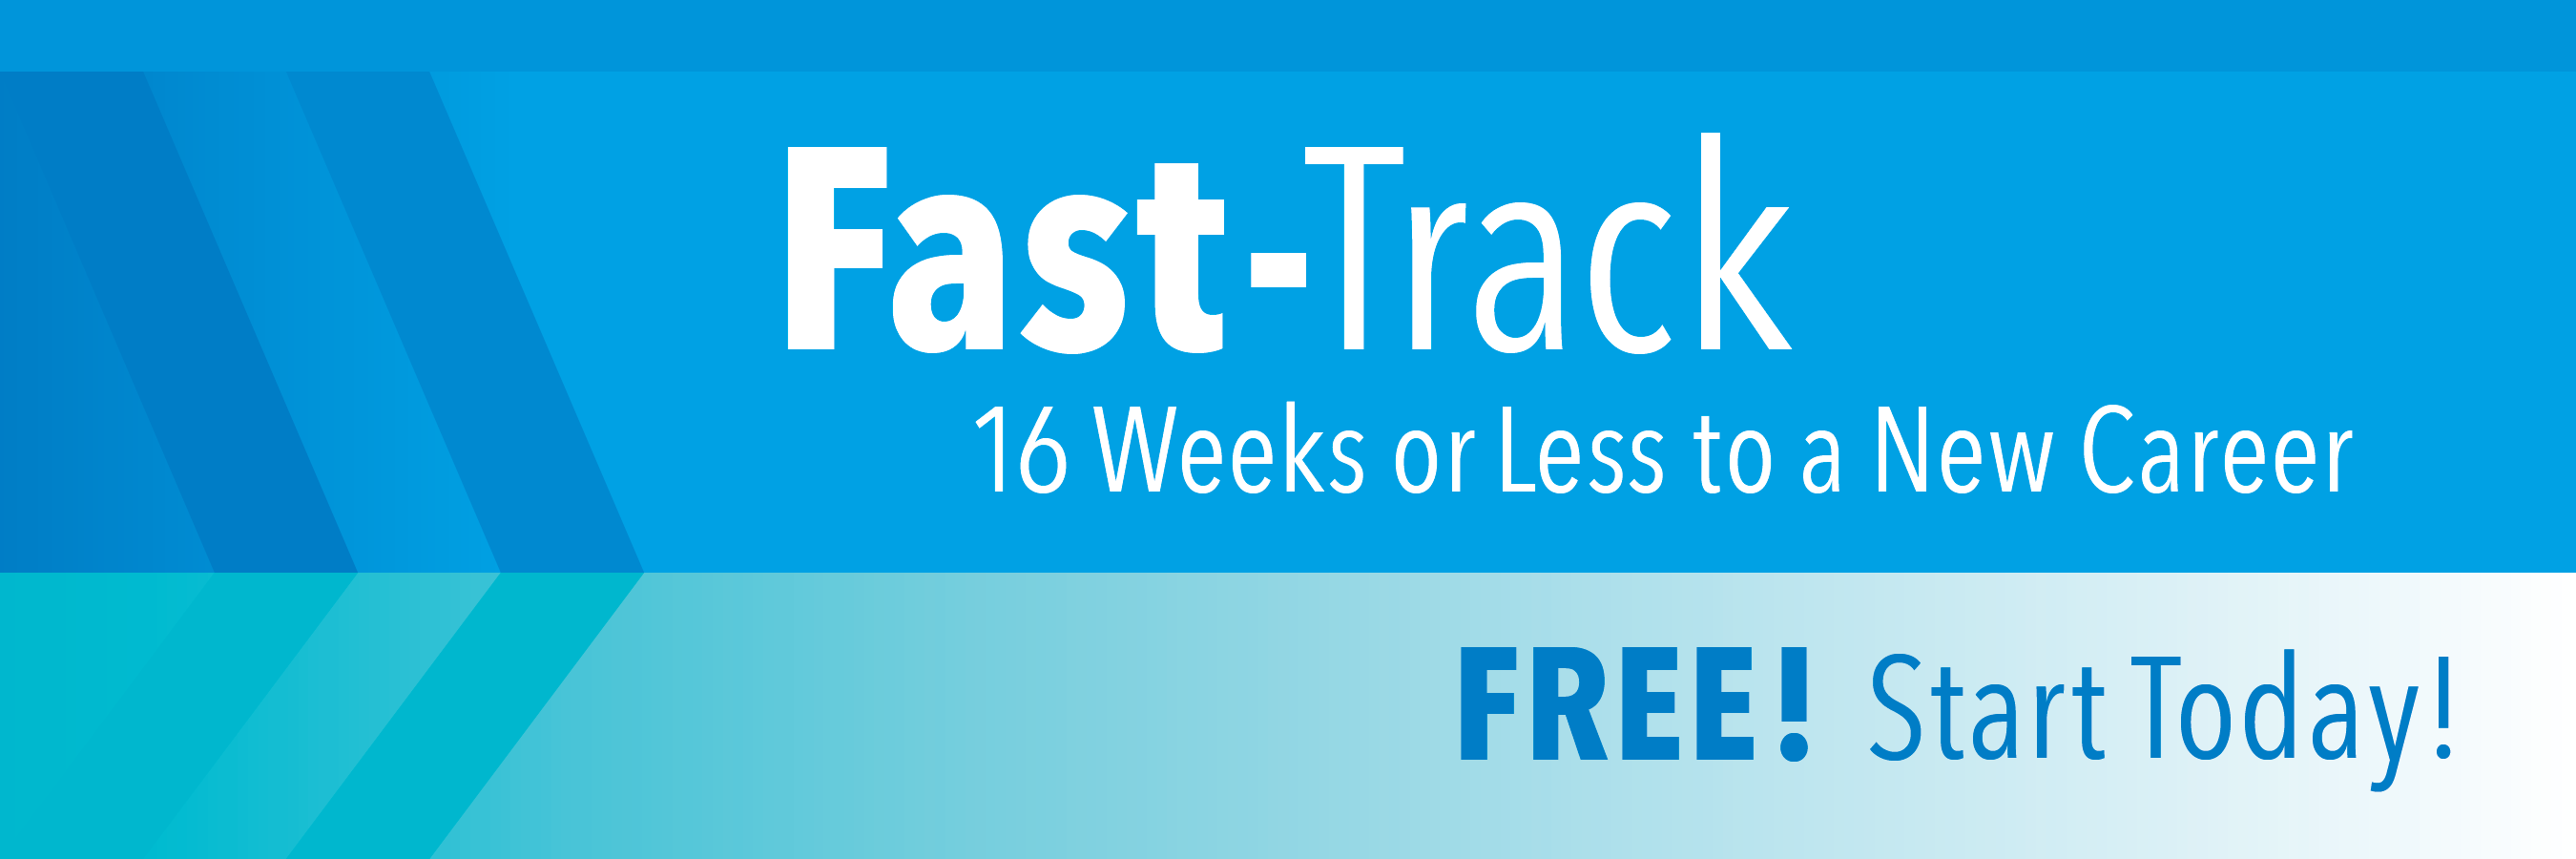 Fast Track - 16 weeks or less to a new career.